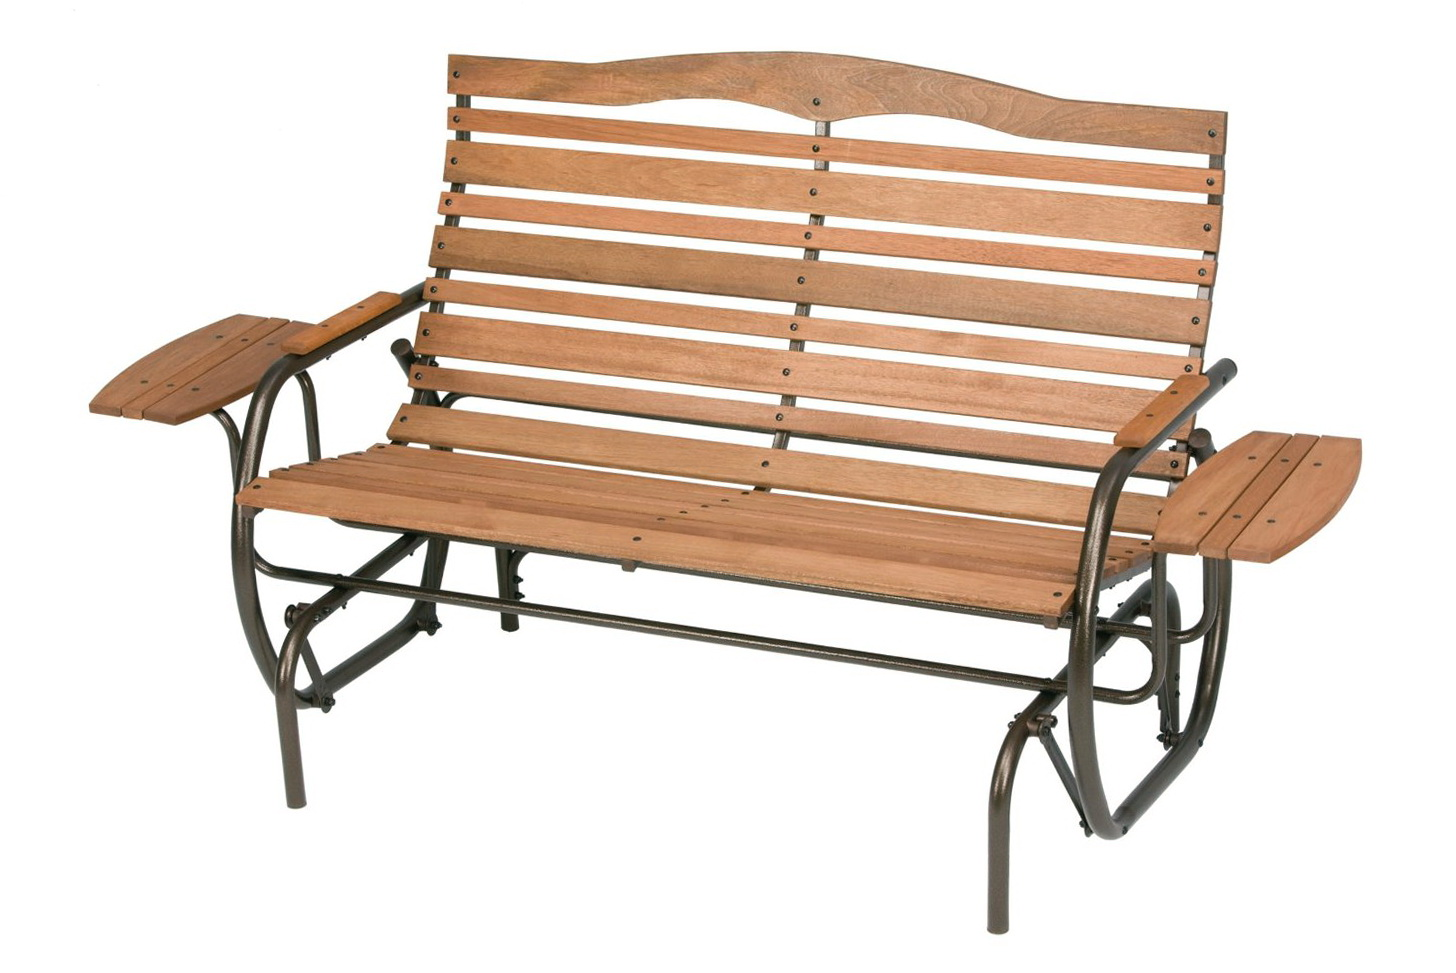 Outdoor Glider Bench Plans